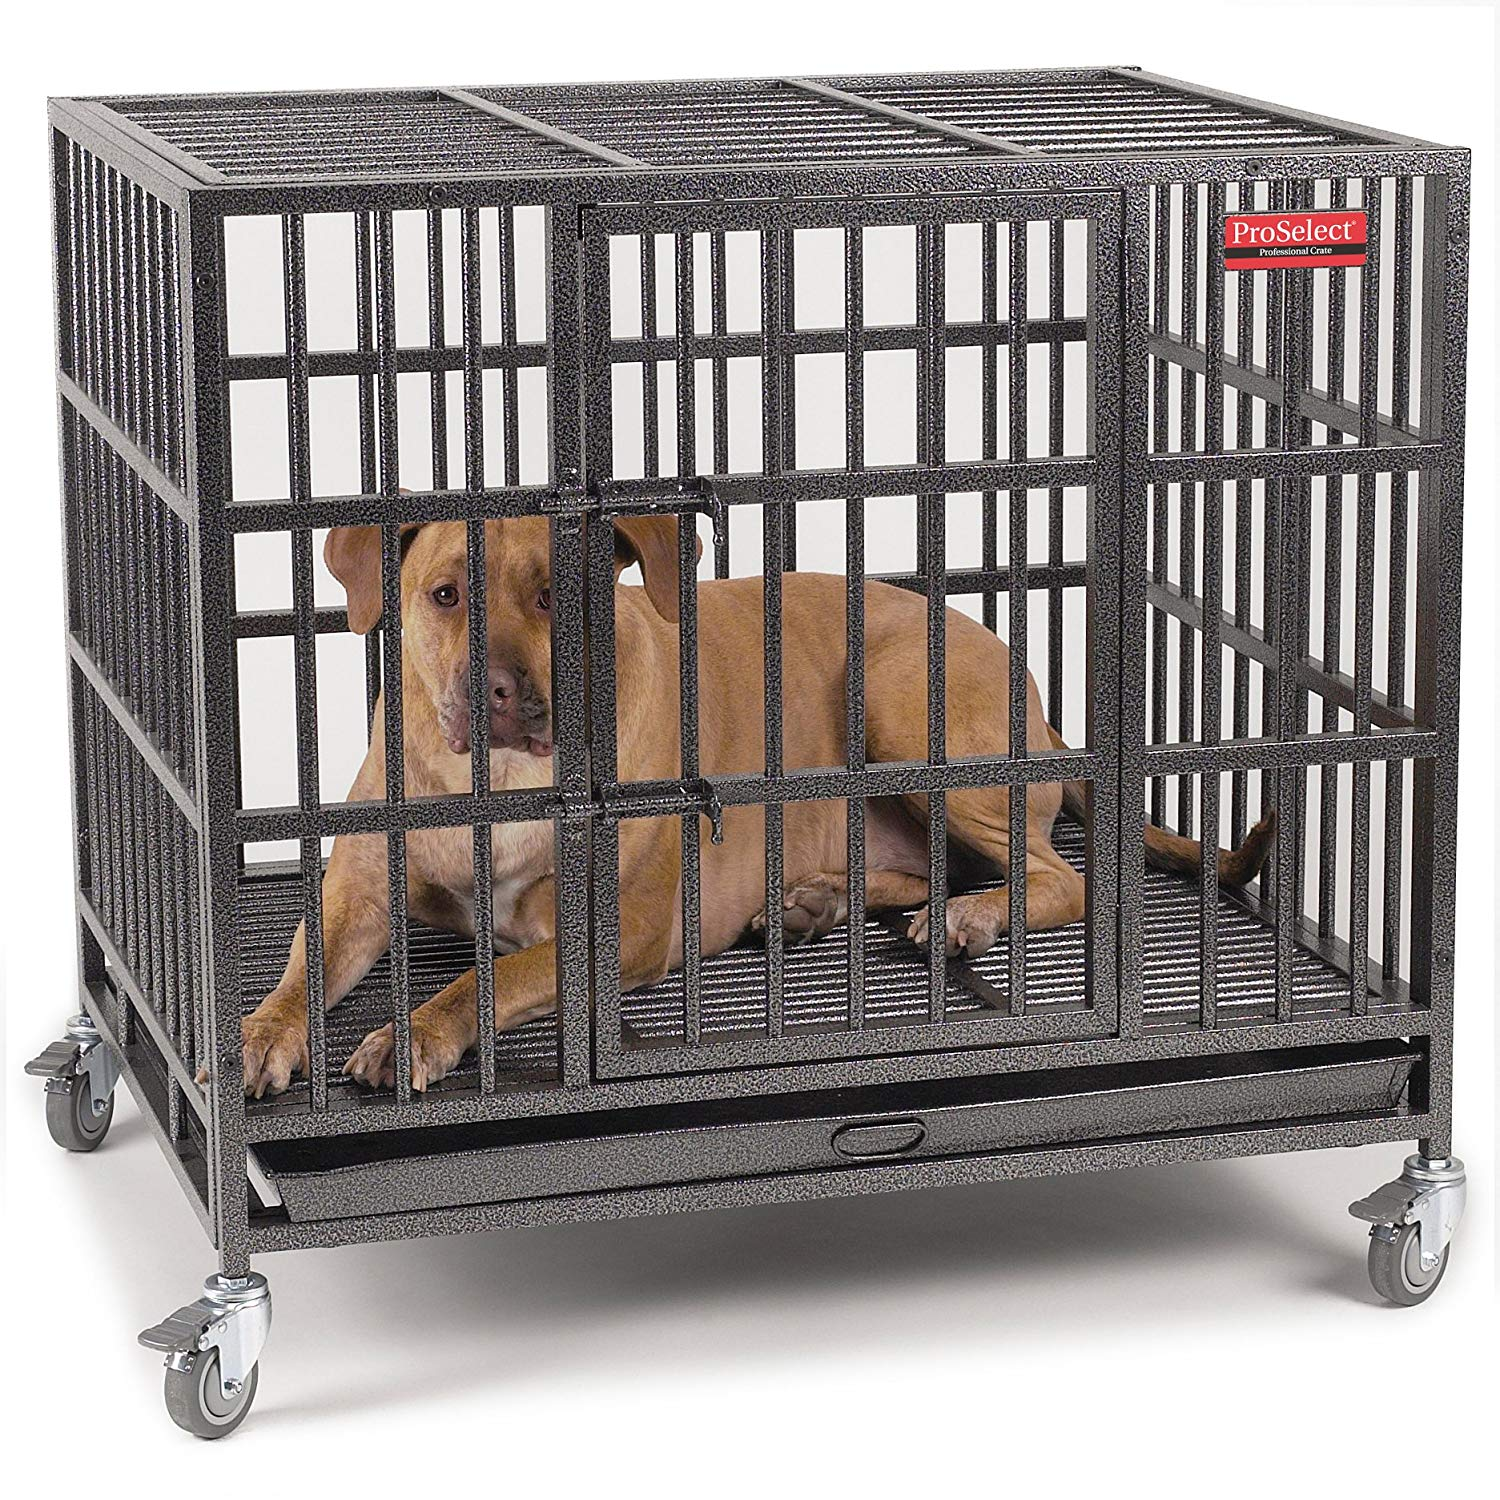 ProSelect empire cages for dogs